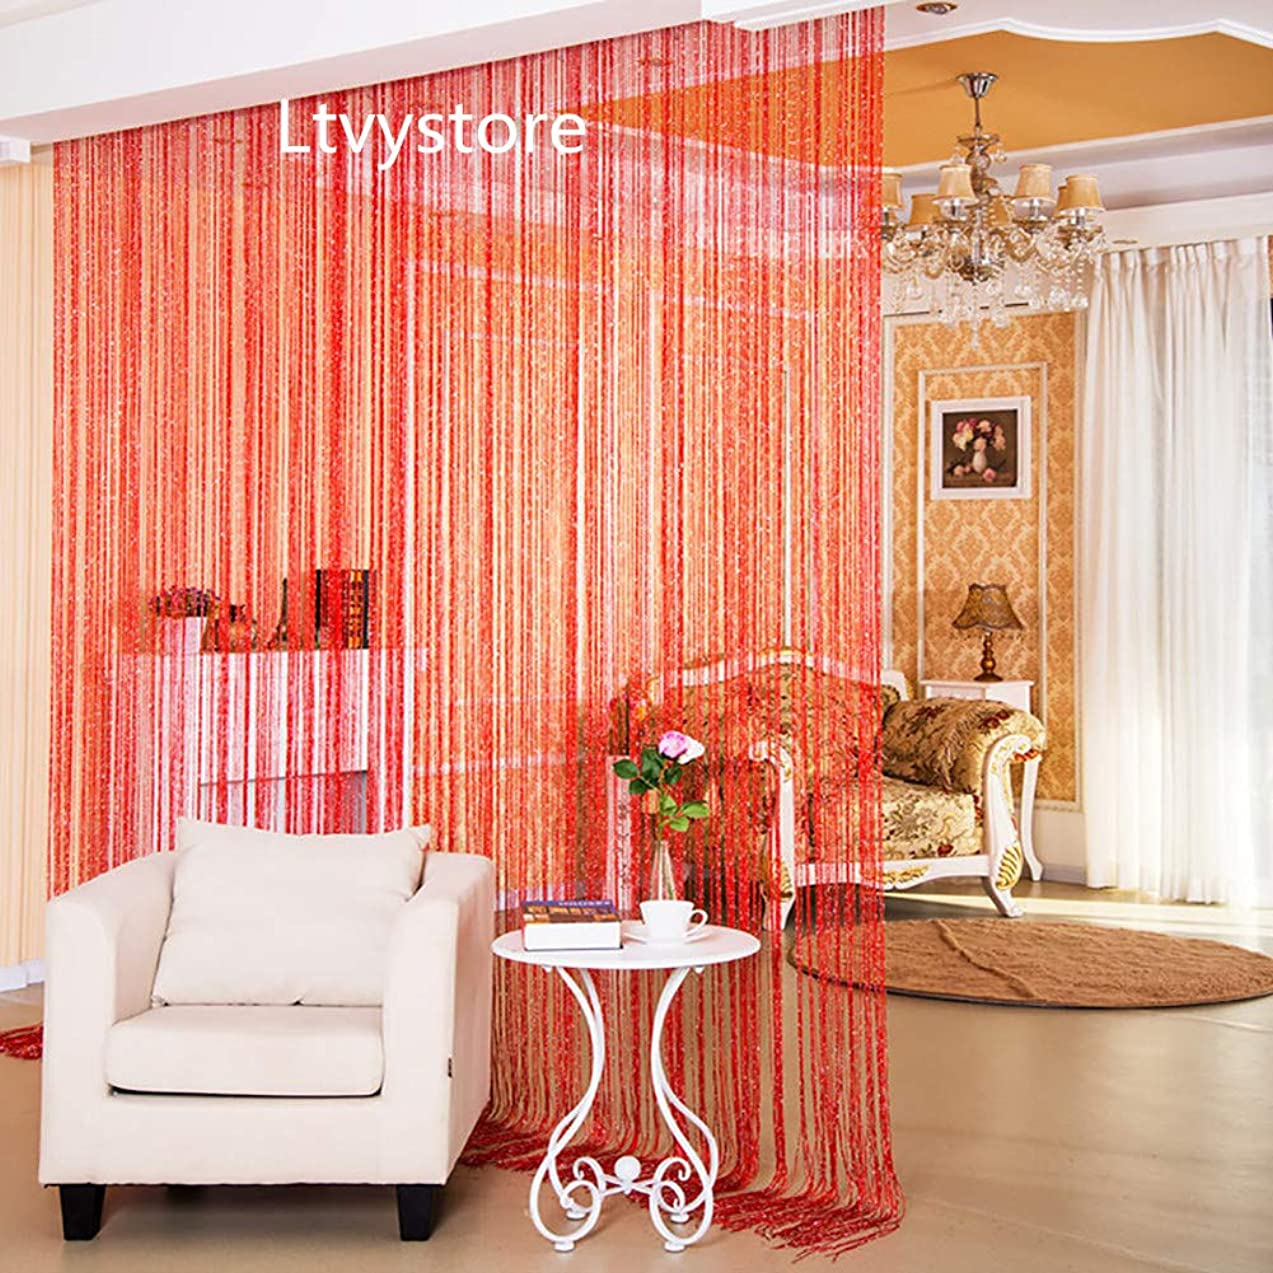 Ltvystore Line Screens Curtain Rare Flat Red Ribbon Door String Curtain Thread Fringe Window Panel Room Divider Strip Tassel 39Inch X 78Inch